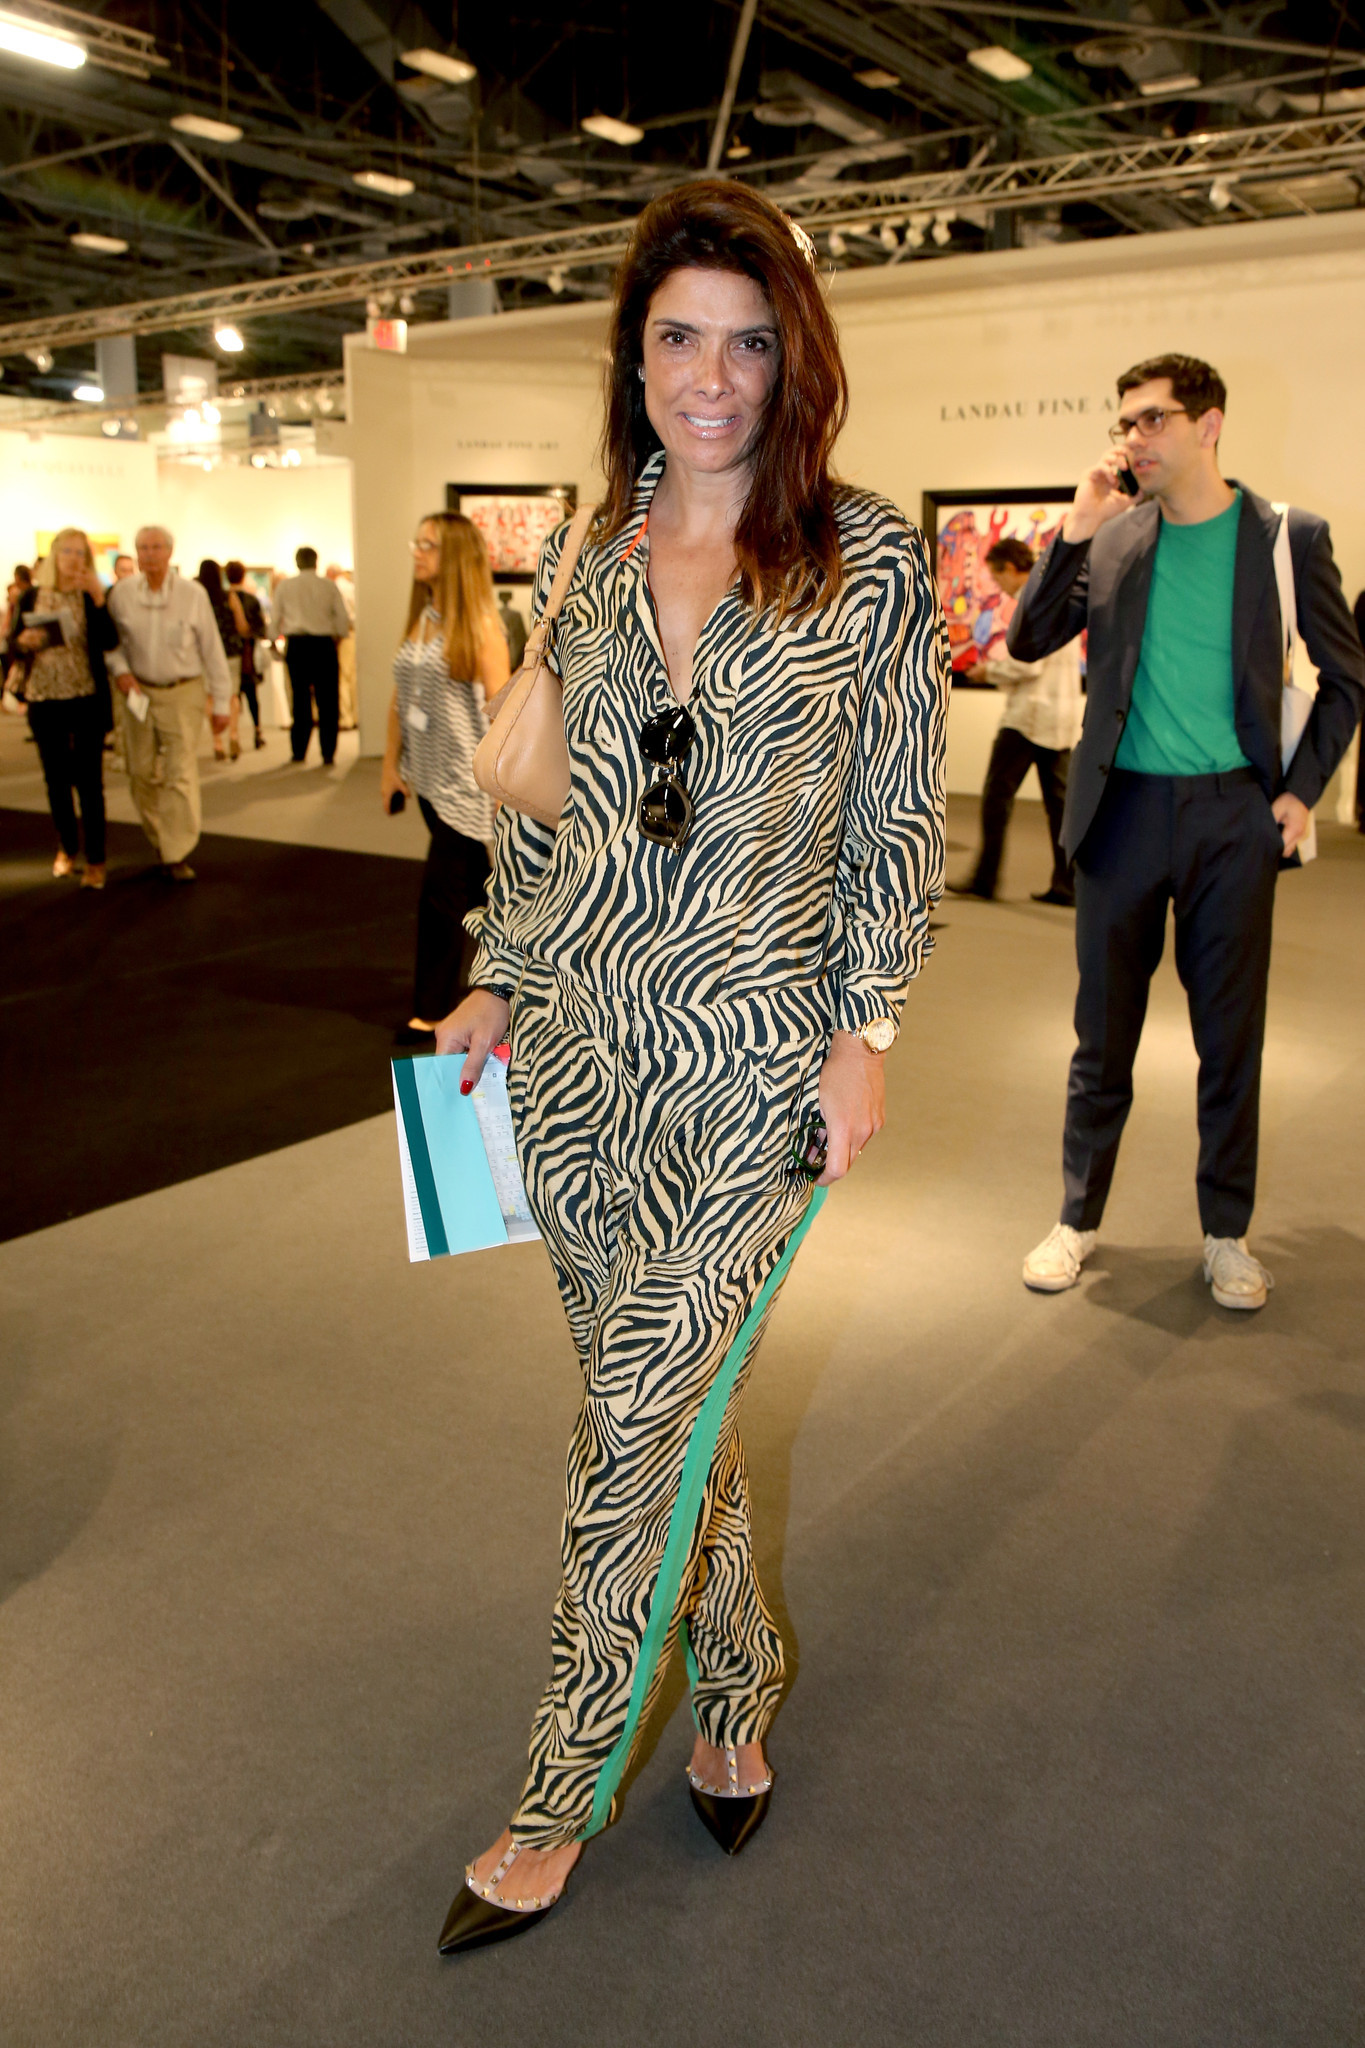 PHOTOS: The fashionistas of Art Basel - Art Basel Miami Beach 2013 - Street Style - Day 1